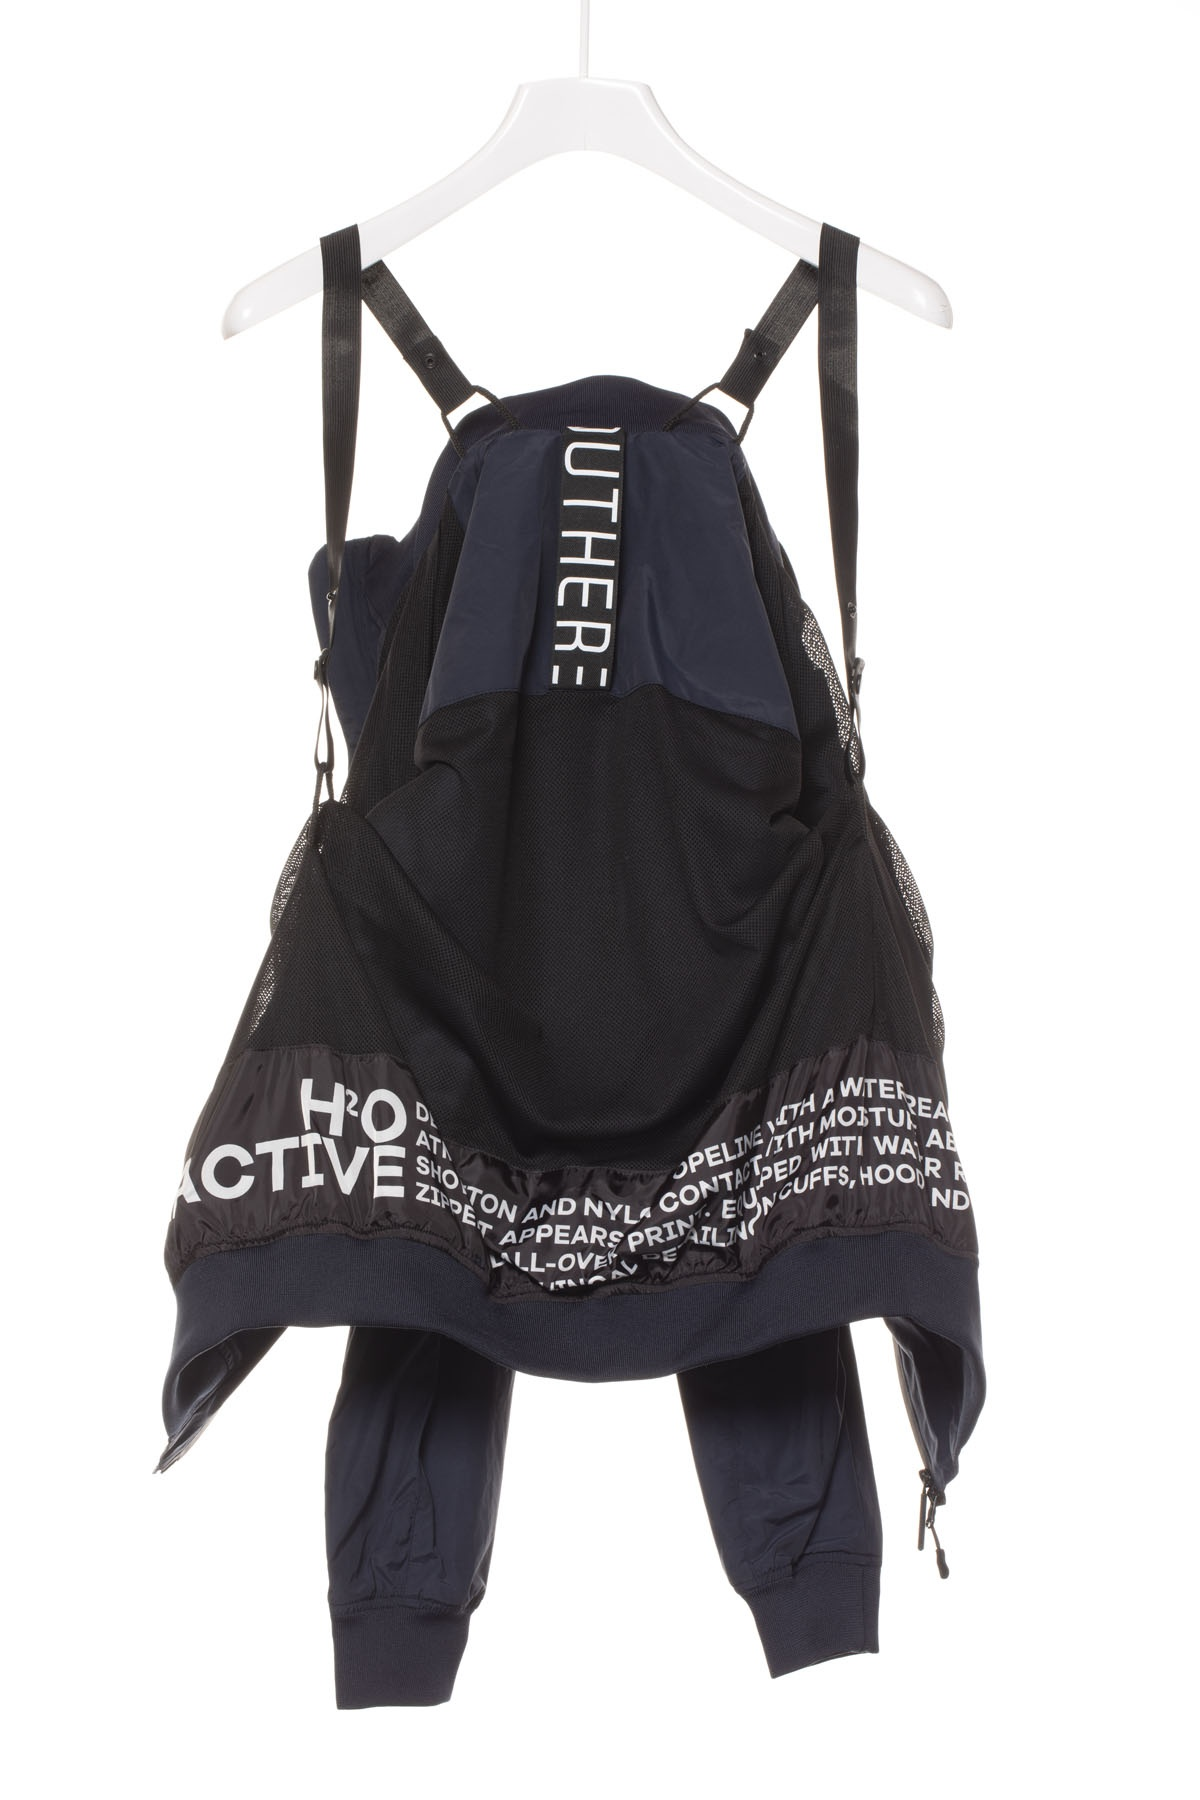 H2O REACTIVE Jacket for man OUTHERE S/S 20